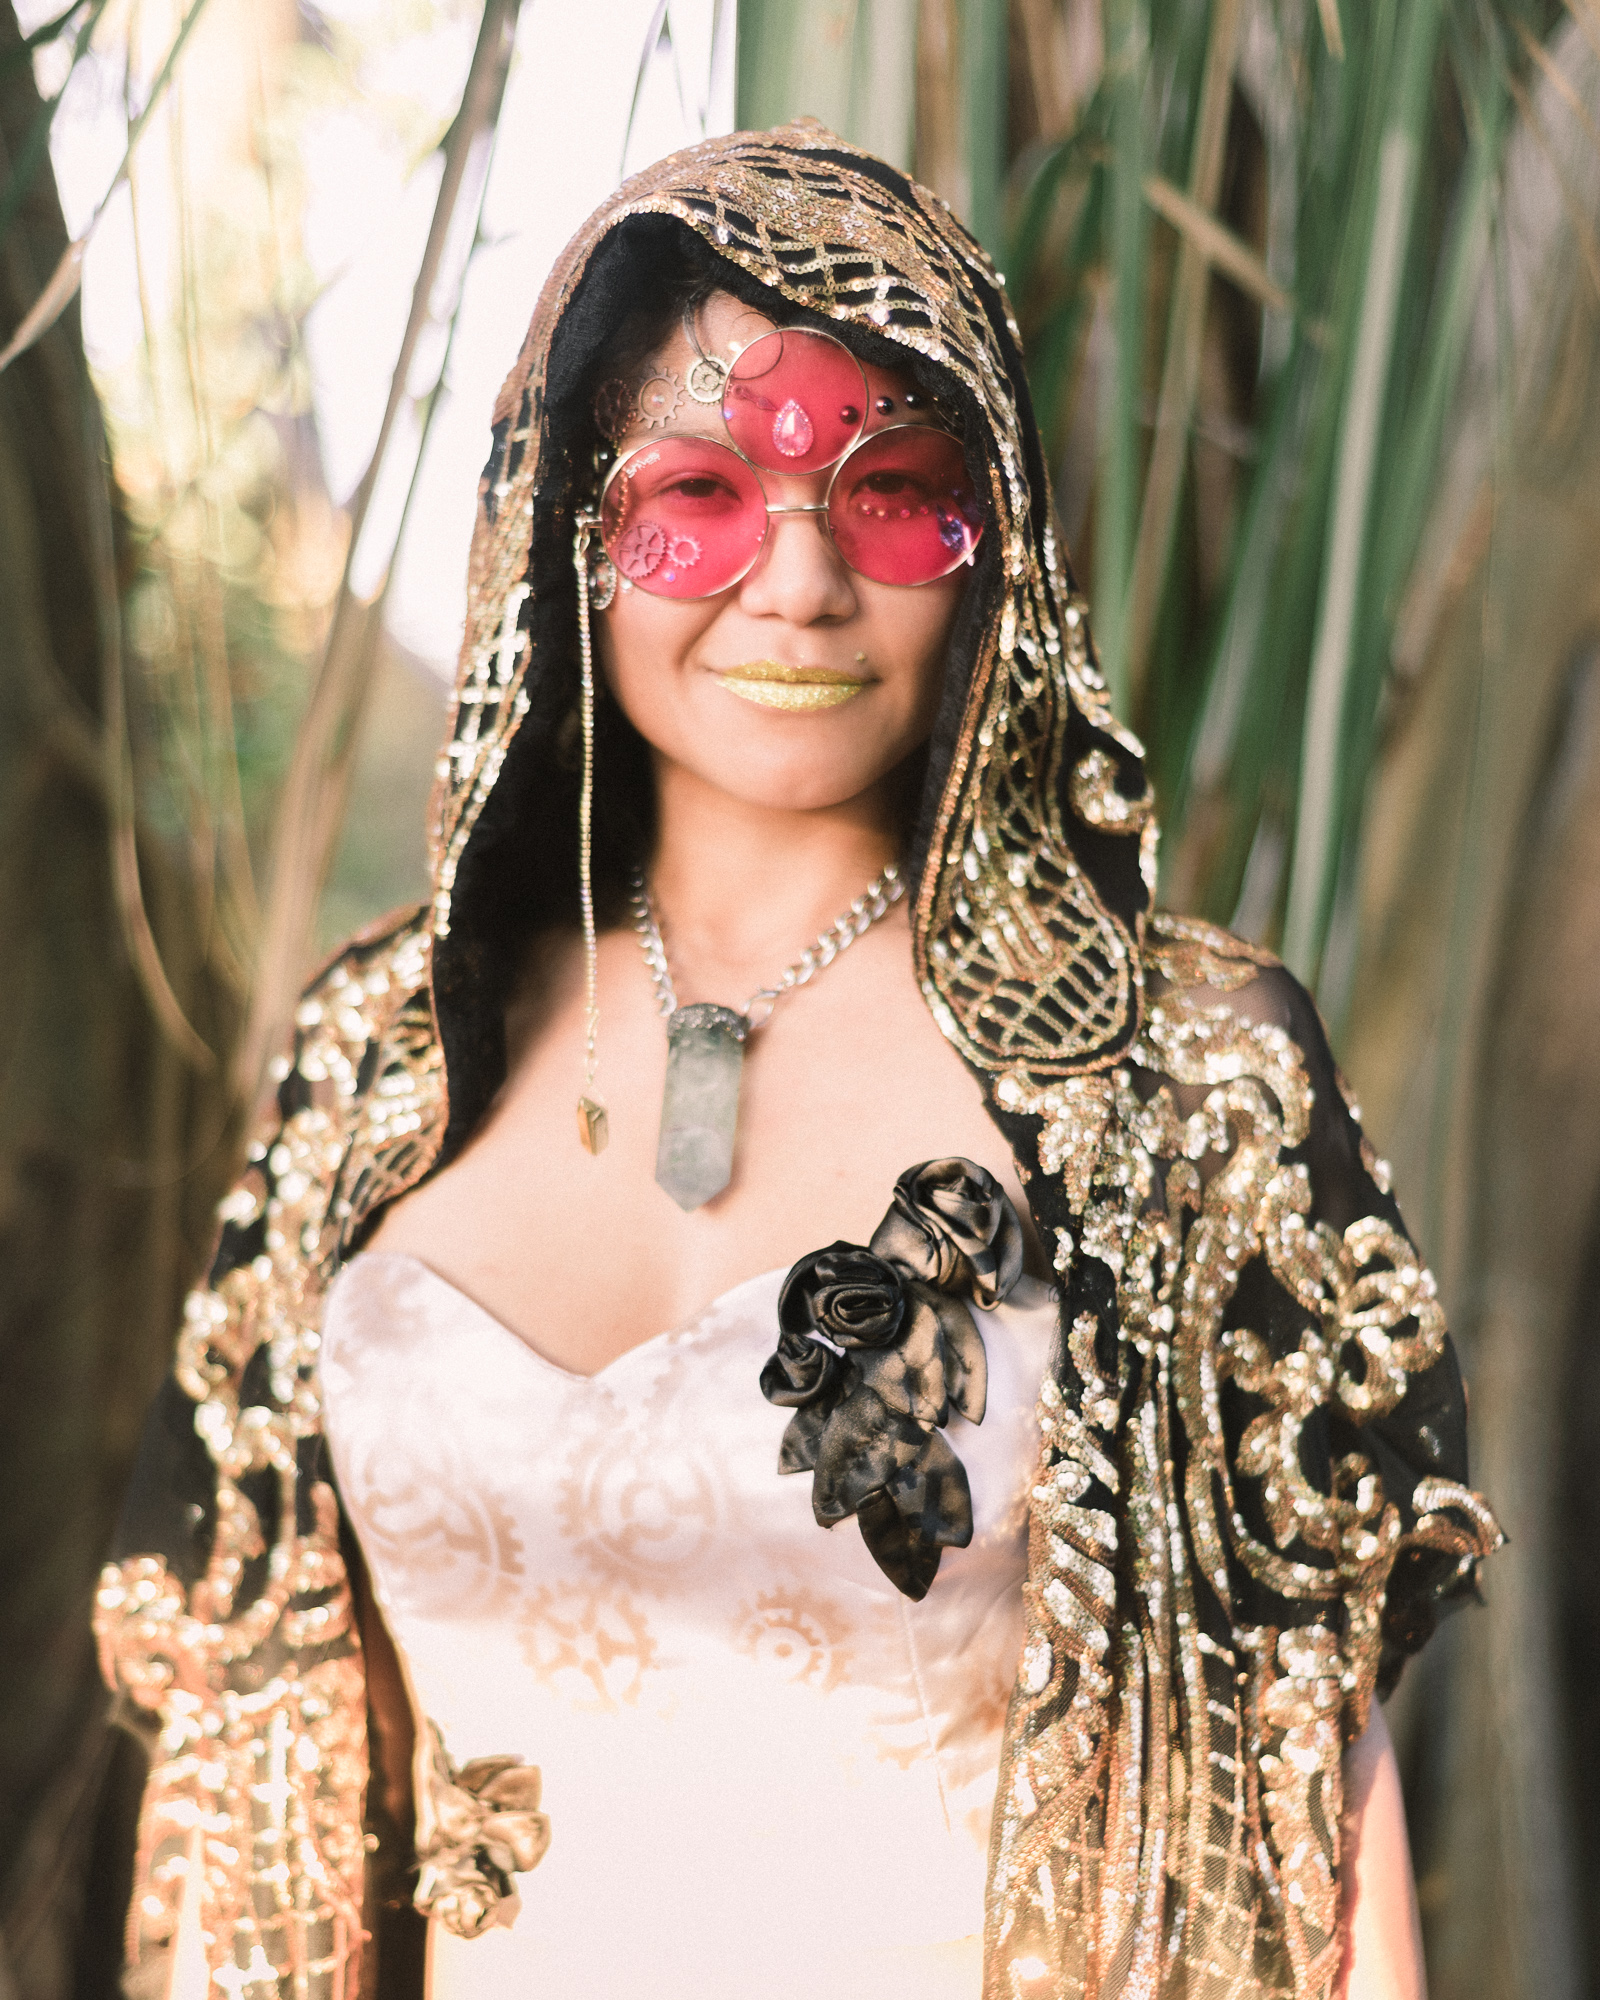 The Renaissance Festival 2018 - The entrancing fabrics that glimmer in the light, similar to Claude Monet's, 'Rouen Cathedral in Full Sunlight - Harmony in Blue and Gold', 1893, are beautiful handmade clothing designs covered in jewels, perfectly crafted by Maritza X. Rey. These custom designs that swirl you with mesmerizing silvers and golds make it easy to get lost in a rabbit hole through time, perfectly matching Florida's annual Renaissance Festival, 'Time Travelers' theme (2018).